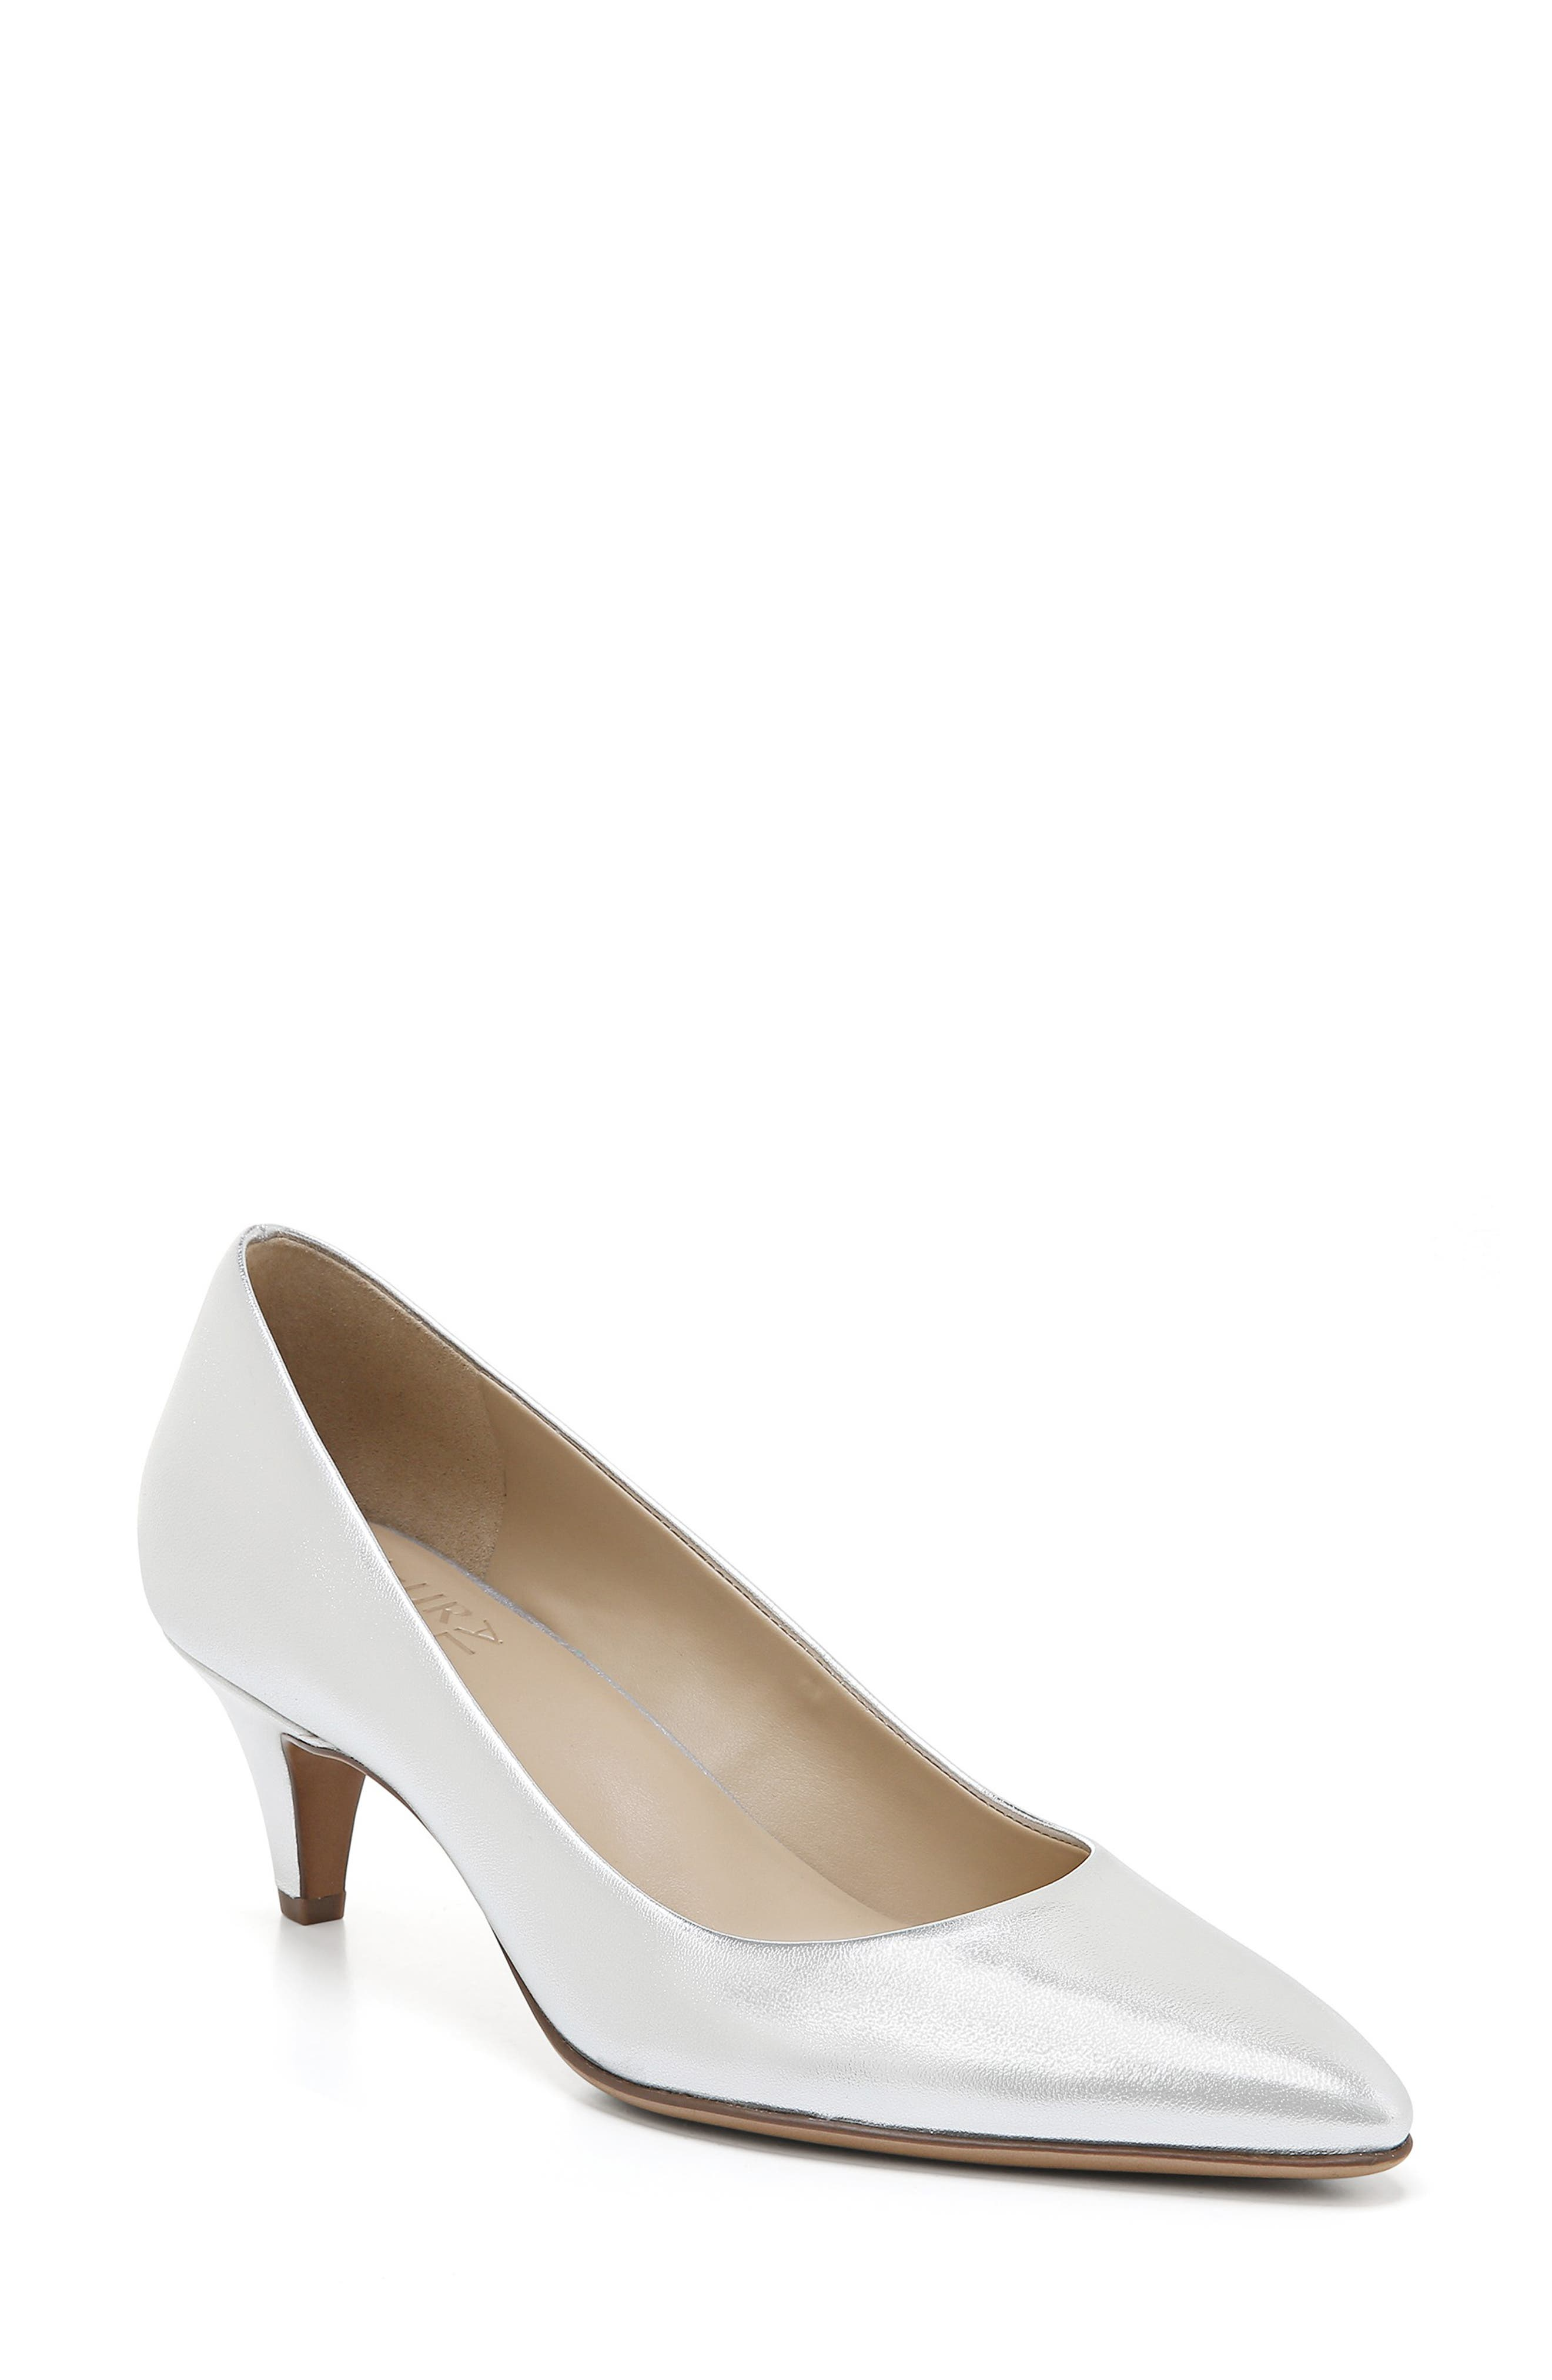 Naturalizer Beverly Pump- Metallic